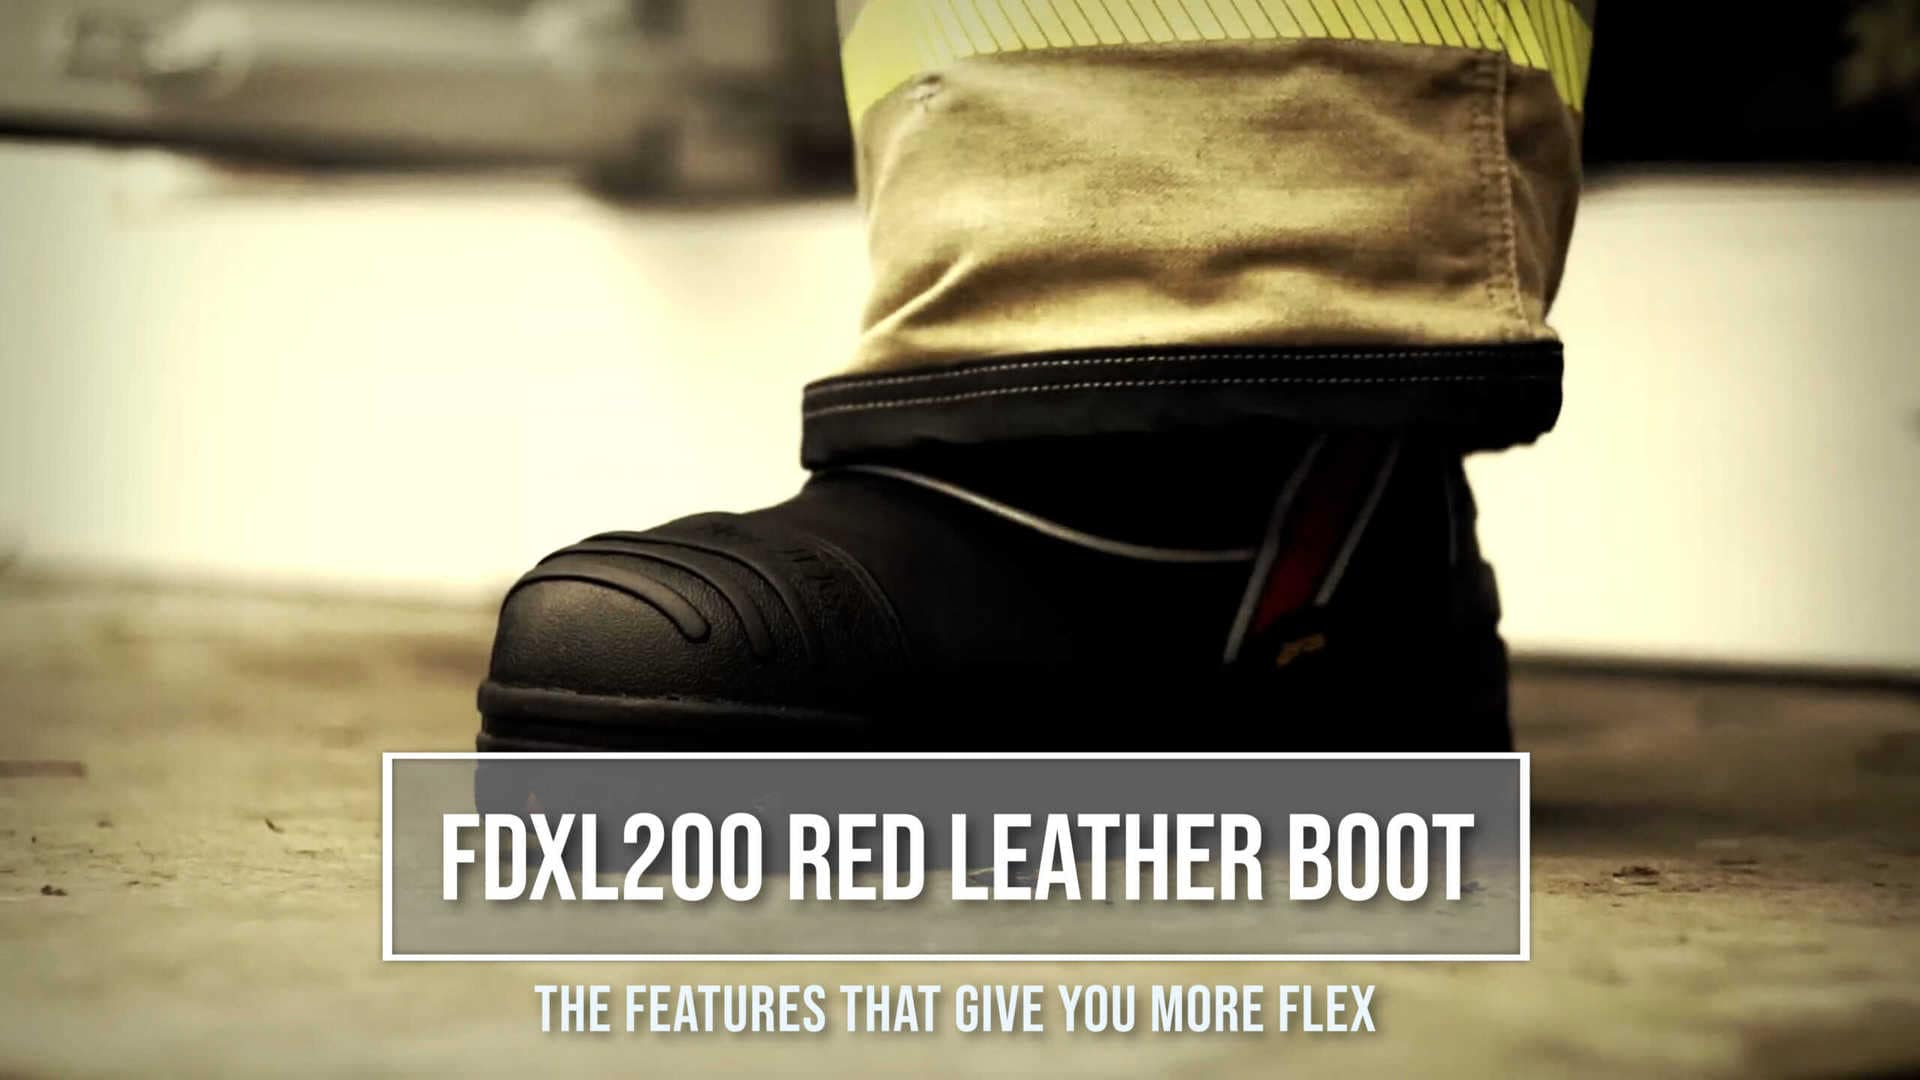 FDXL200 Leather Fire Boot Promotional Video Cover